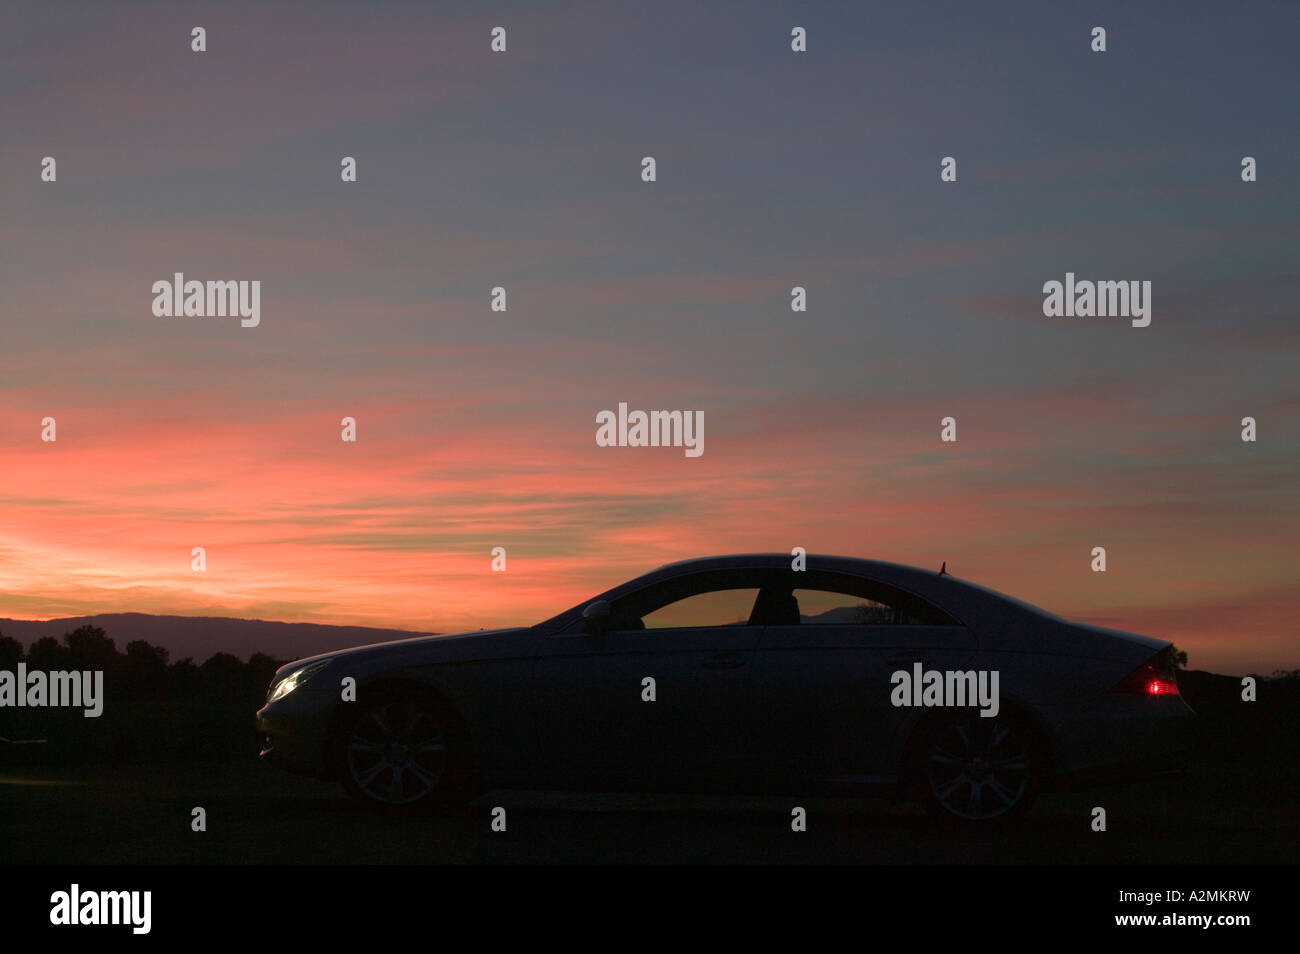 Car parked at sunset - Stock Image